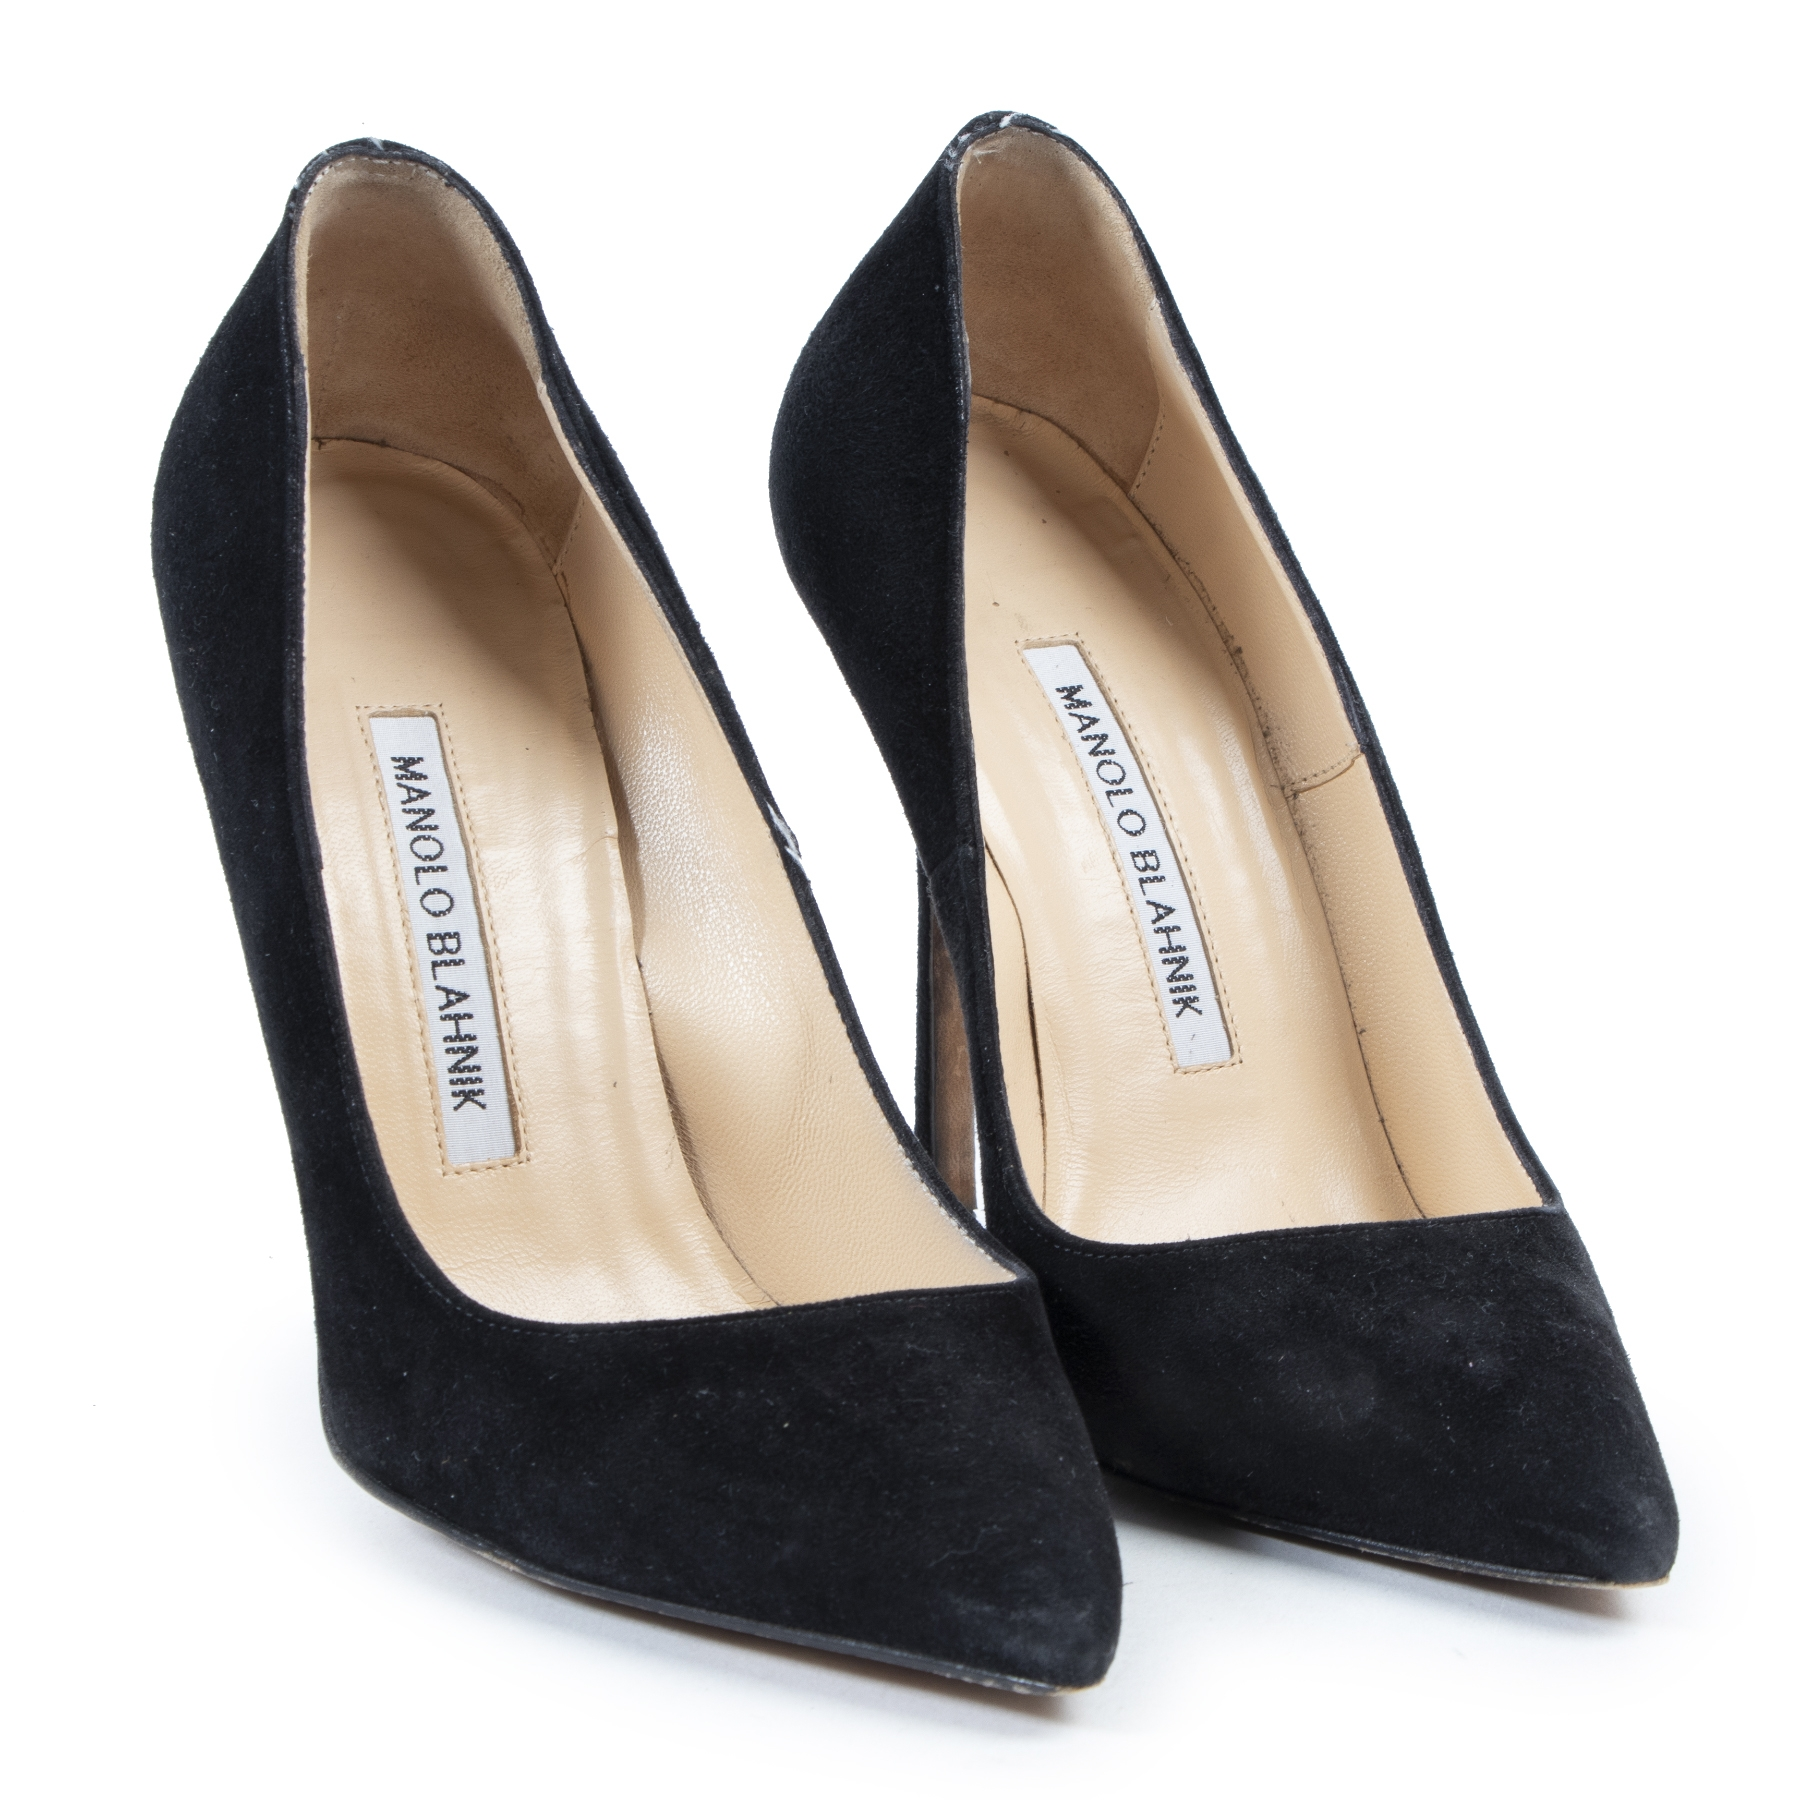 Authentic secondhand Manolo Blahnik Black BB Suede Pointed Toe Pumps - Size 35 designer shoes accessories high heels fashion luxury vintage webshop safe secure online shopping